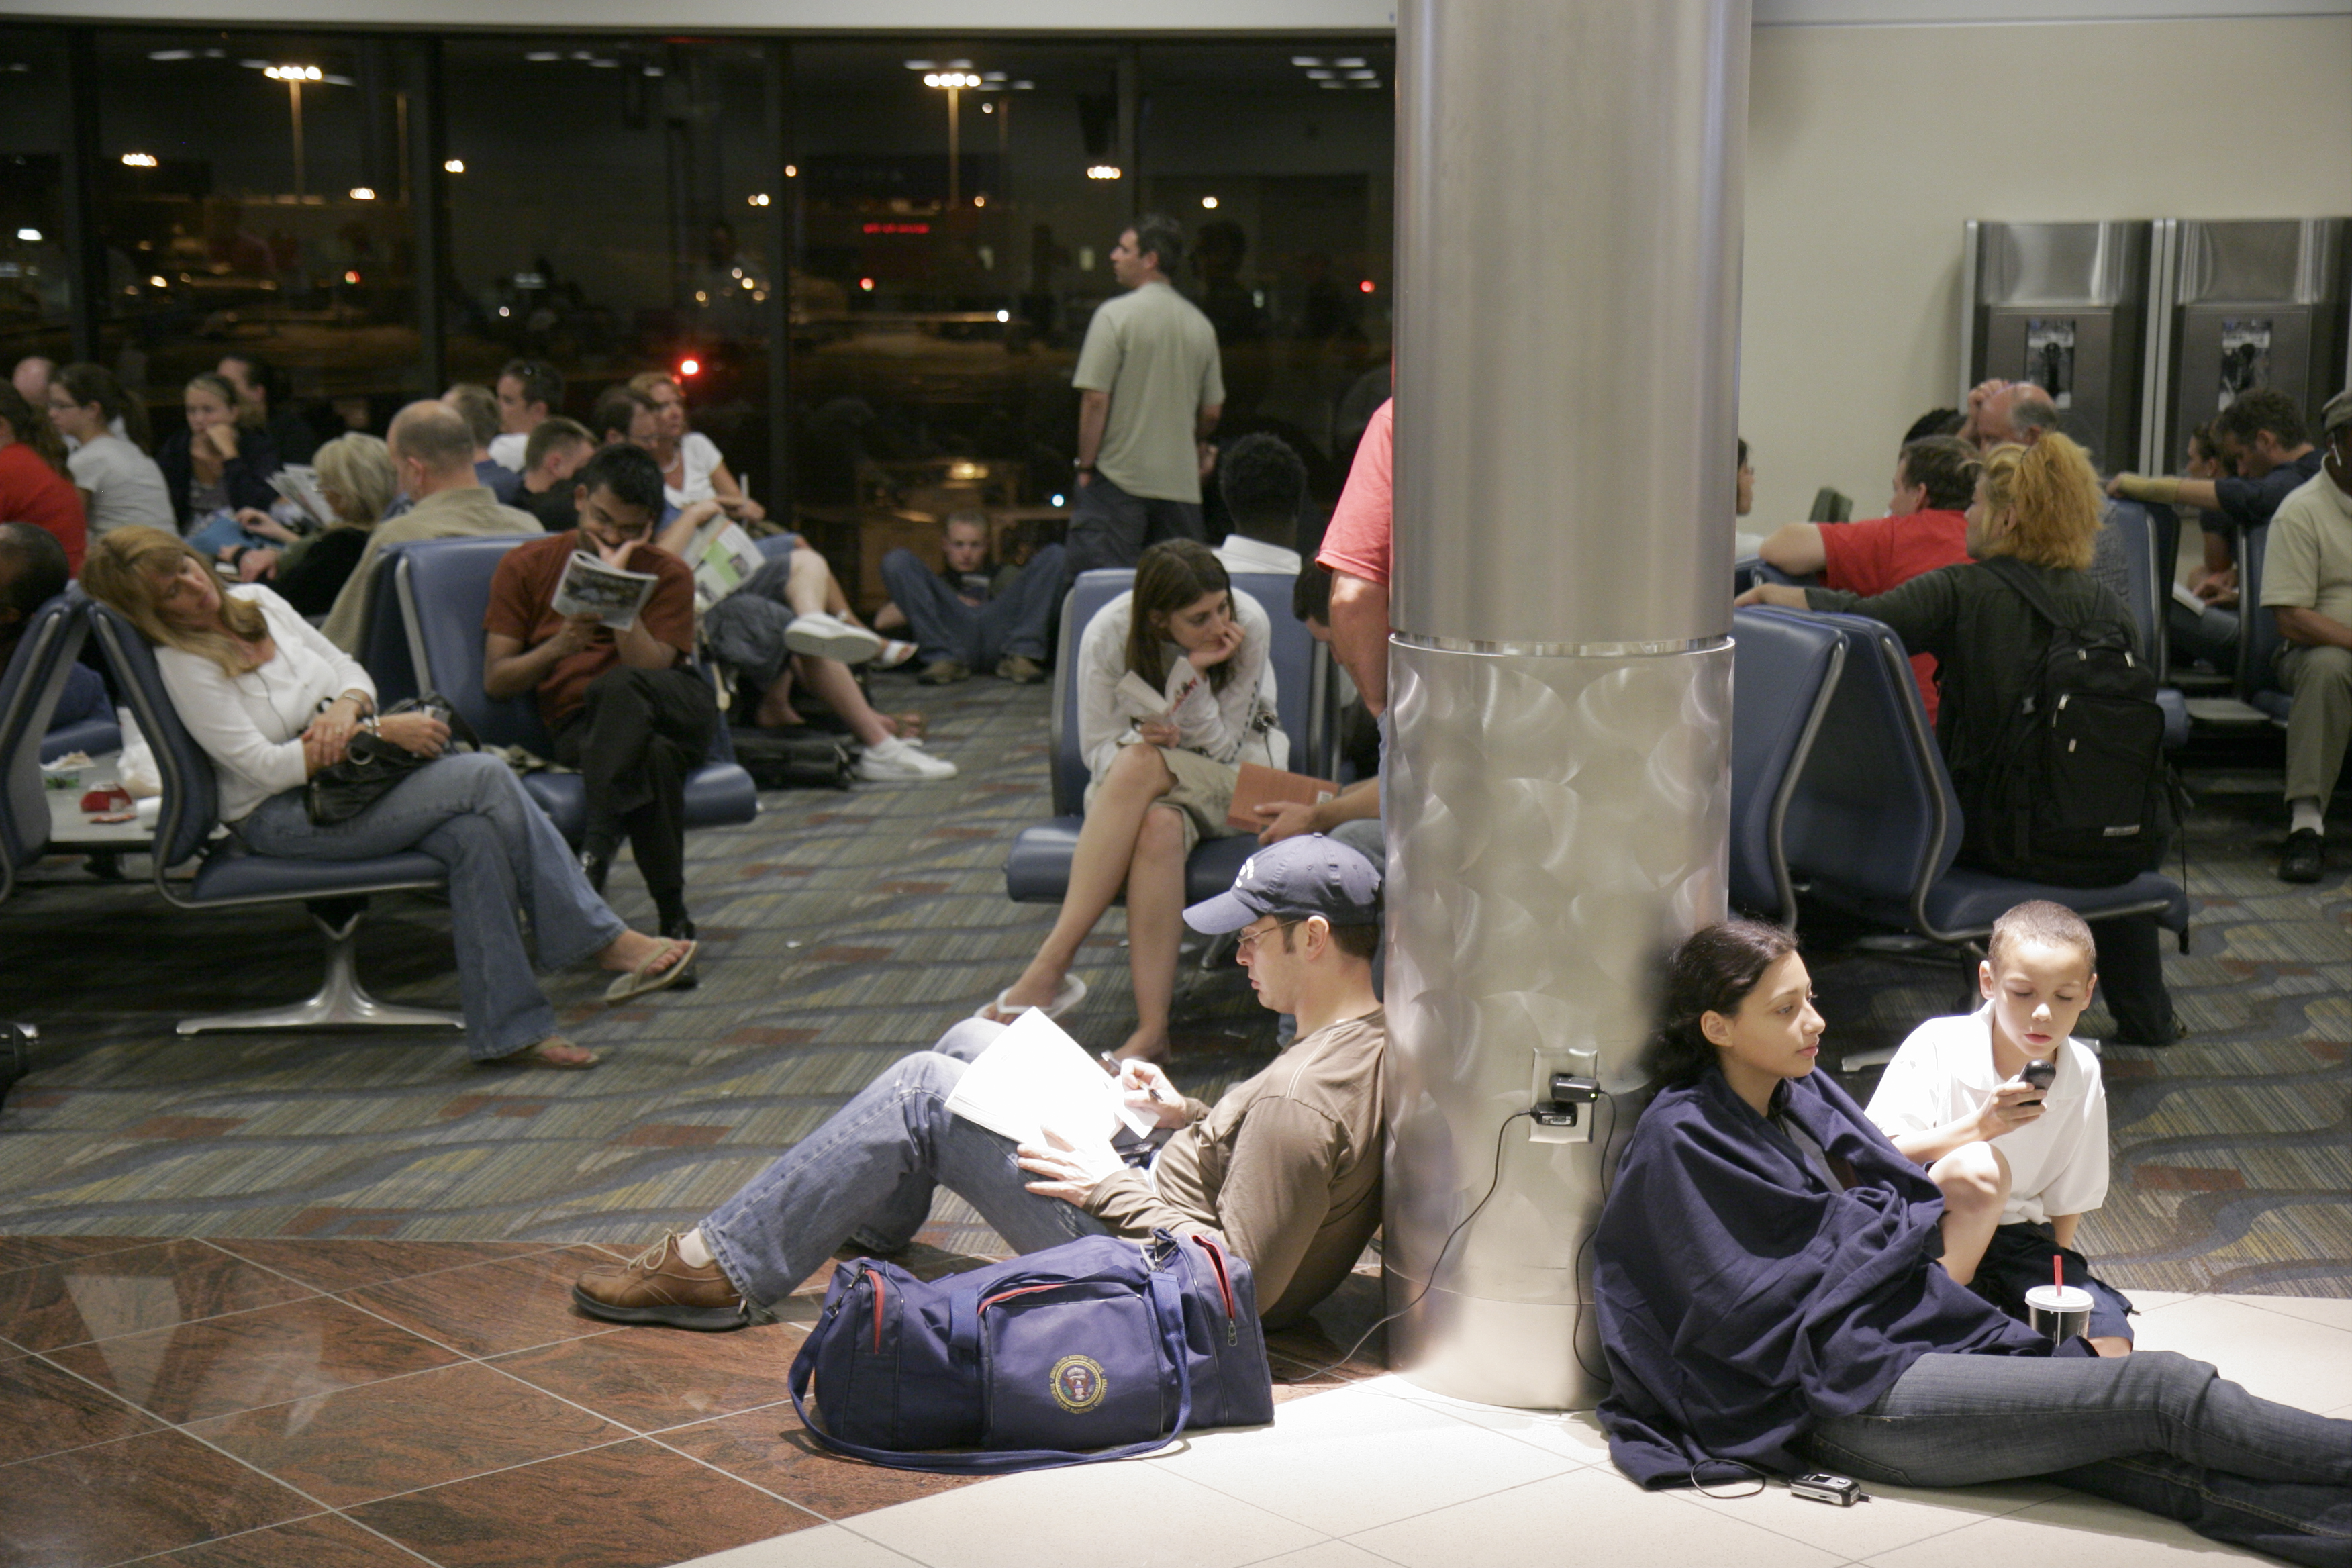 Passengers waiting for a delayed Delta Airlines flight at Hartsfield-Jackson Atlanta International Airport.